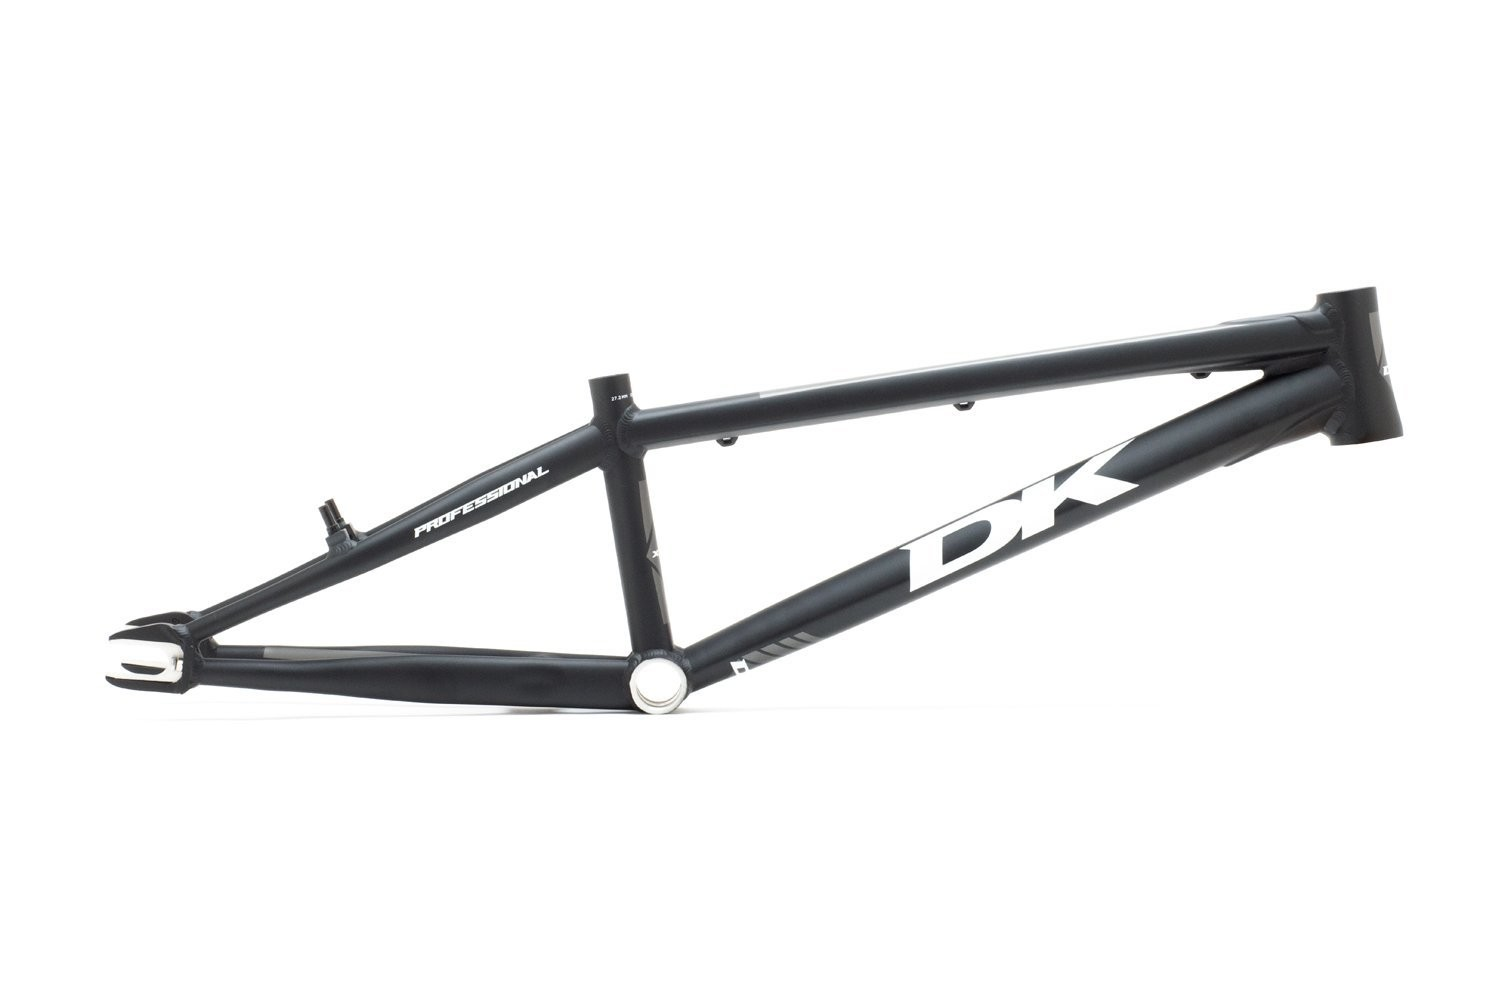 DK Professional Series frames